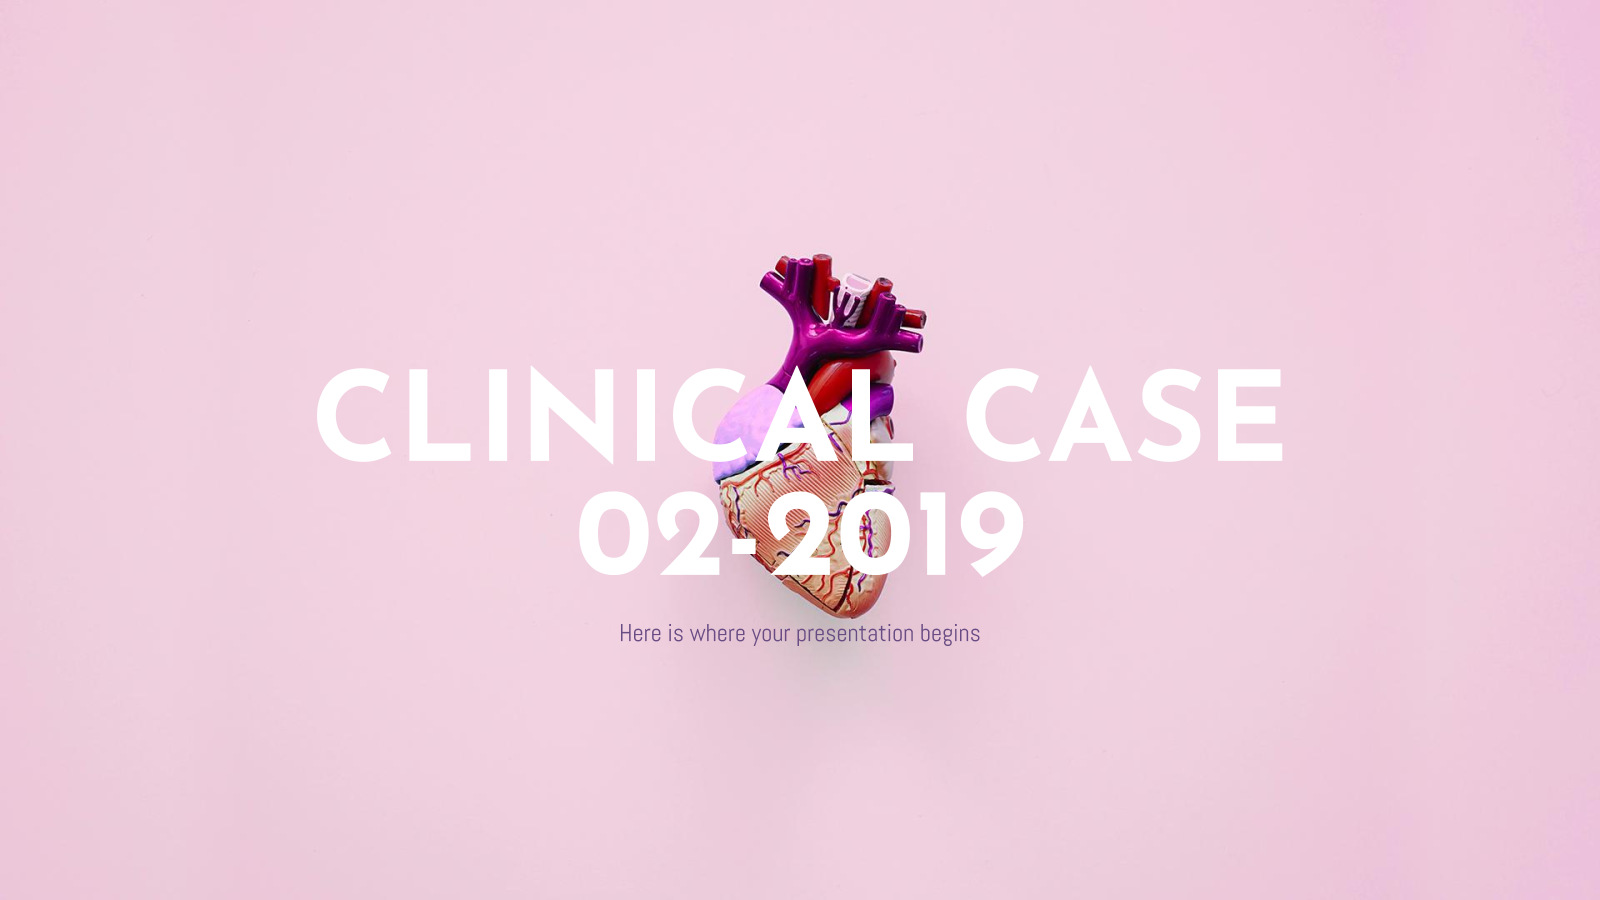 Clinical Case 02-2019 presentation template